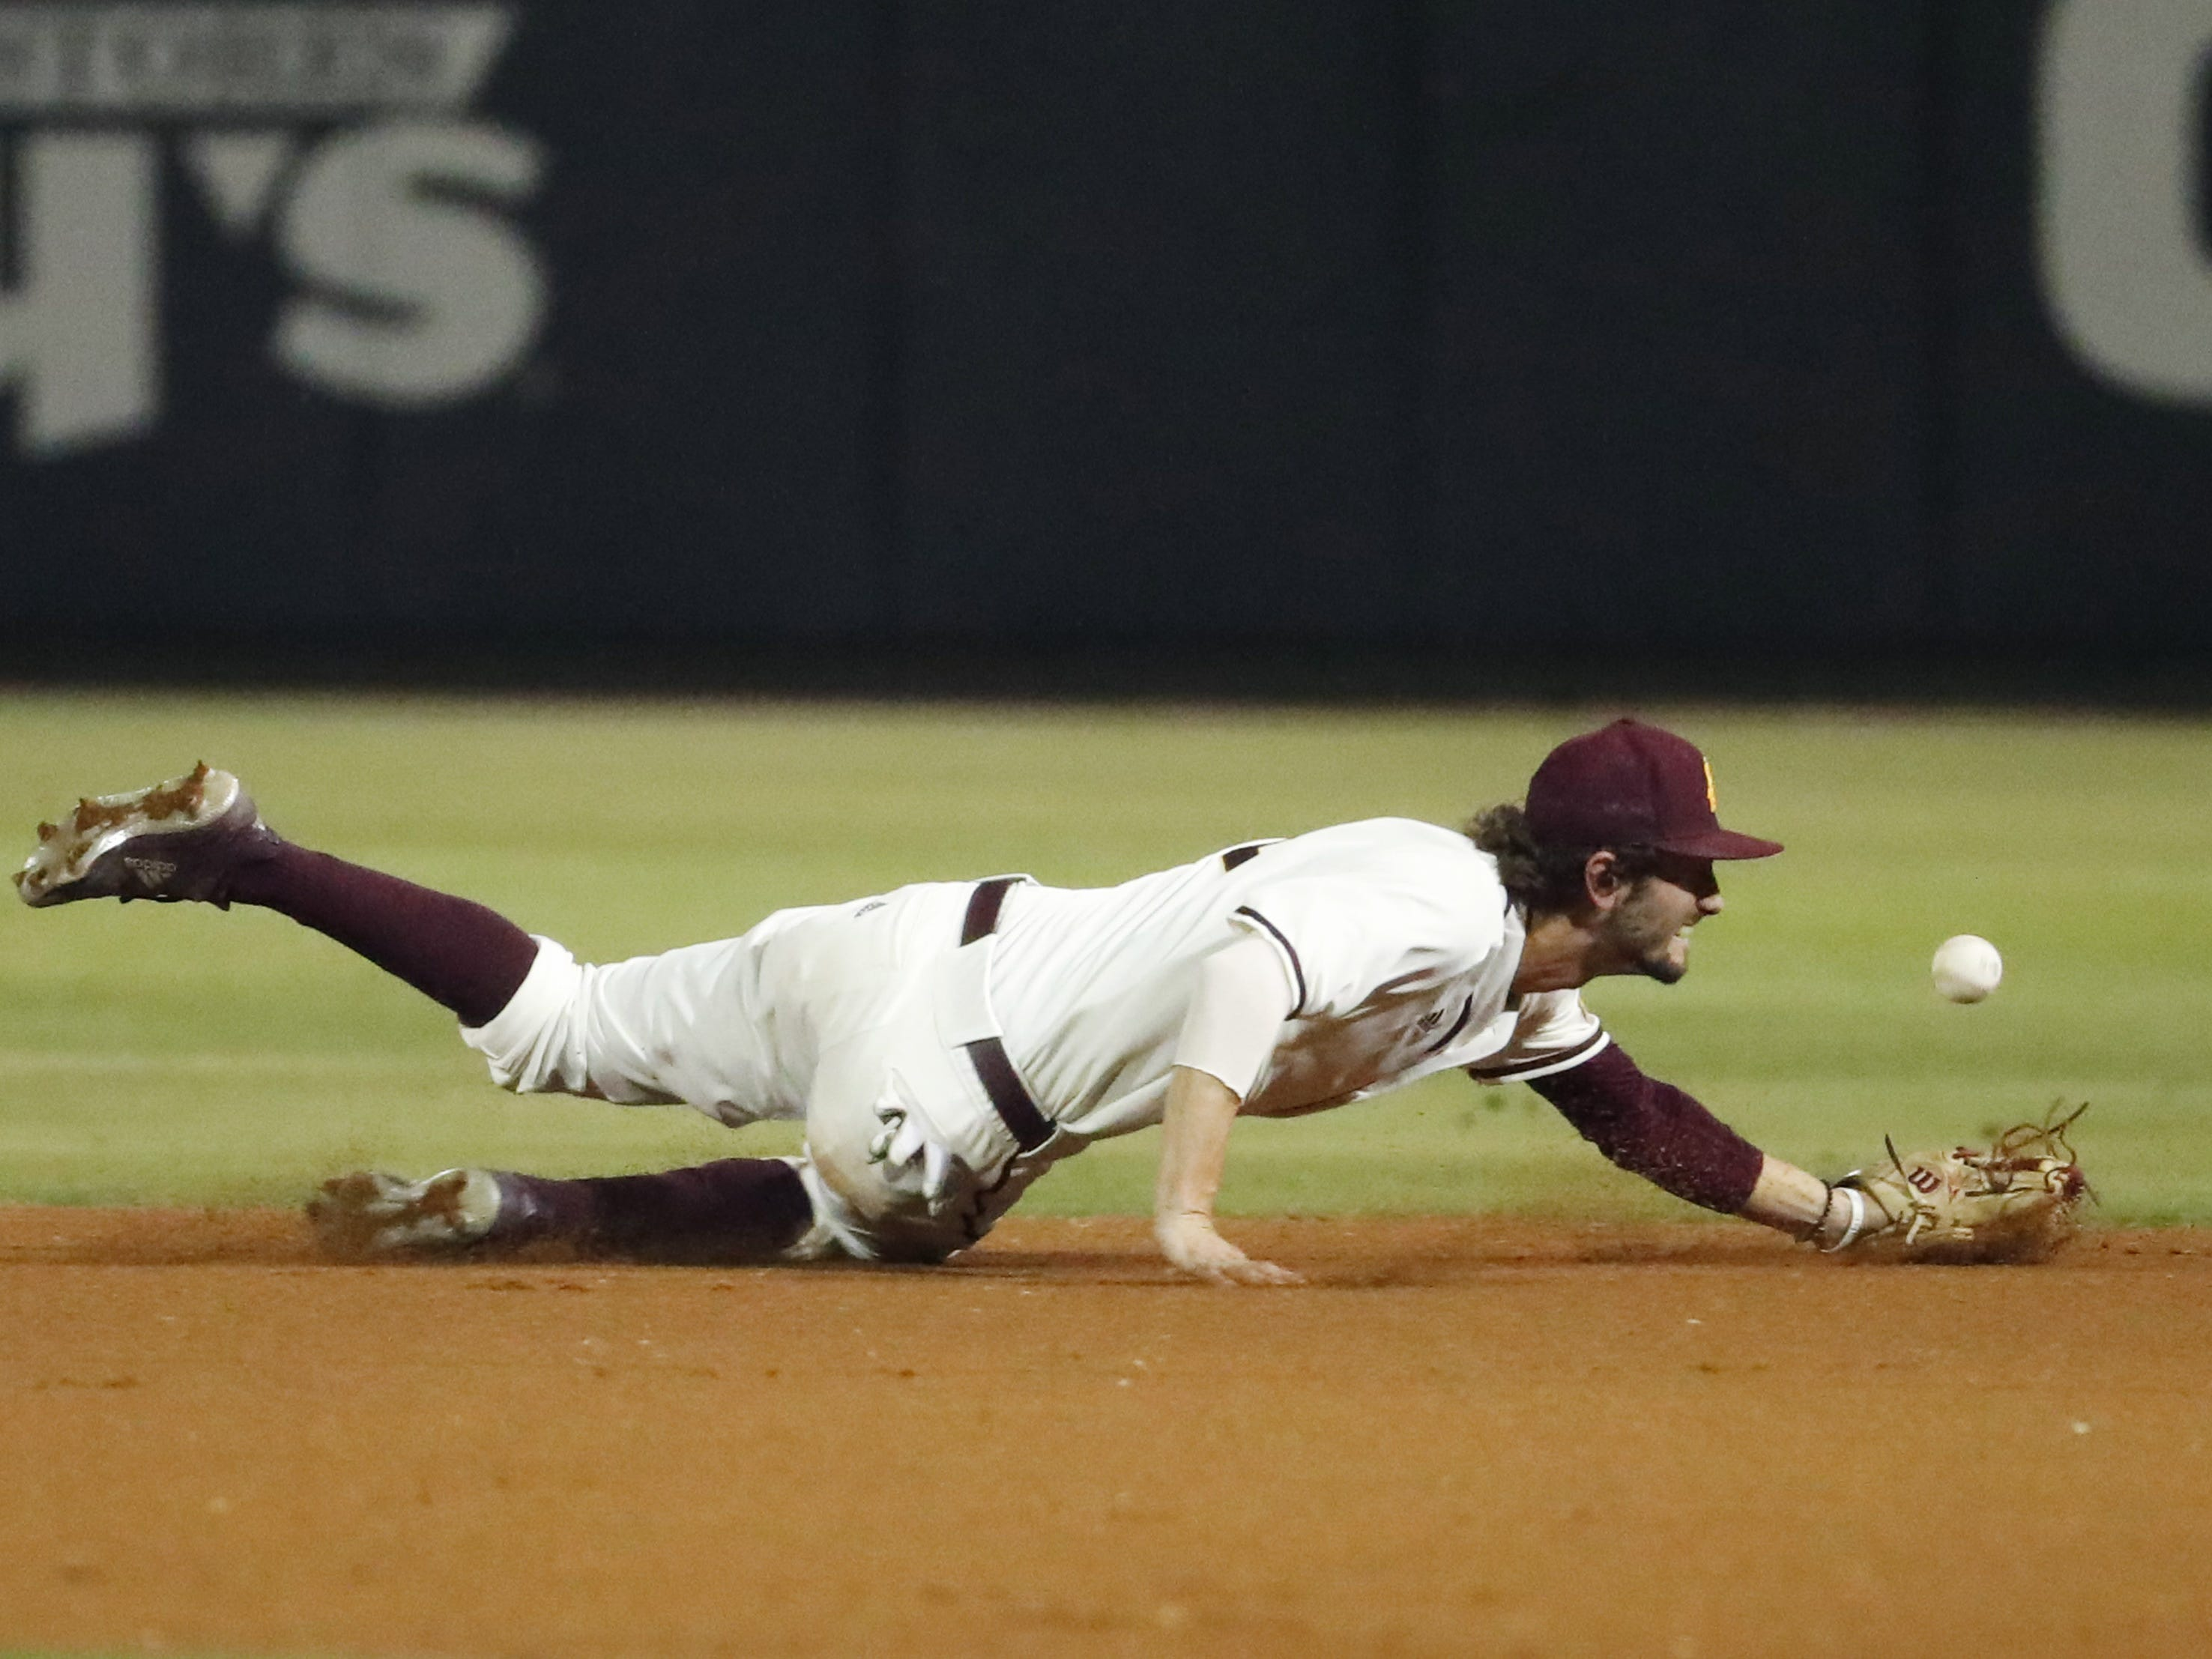 A ground ball gets by ASU second baseman Drew Swift during the fifth inning against UNLV in Phoenix April 23, 2019.